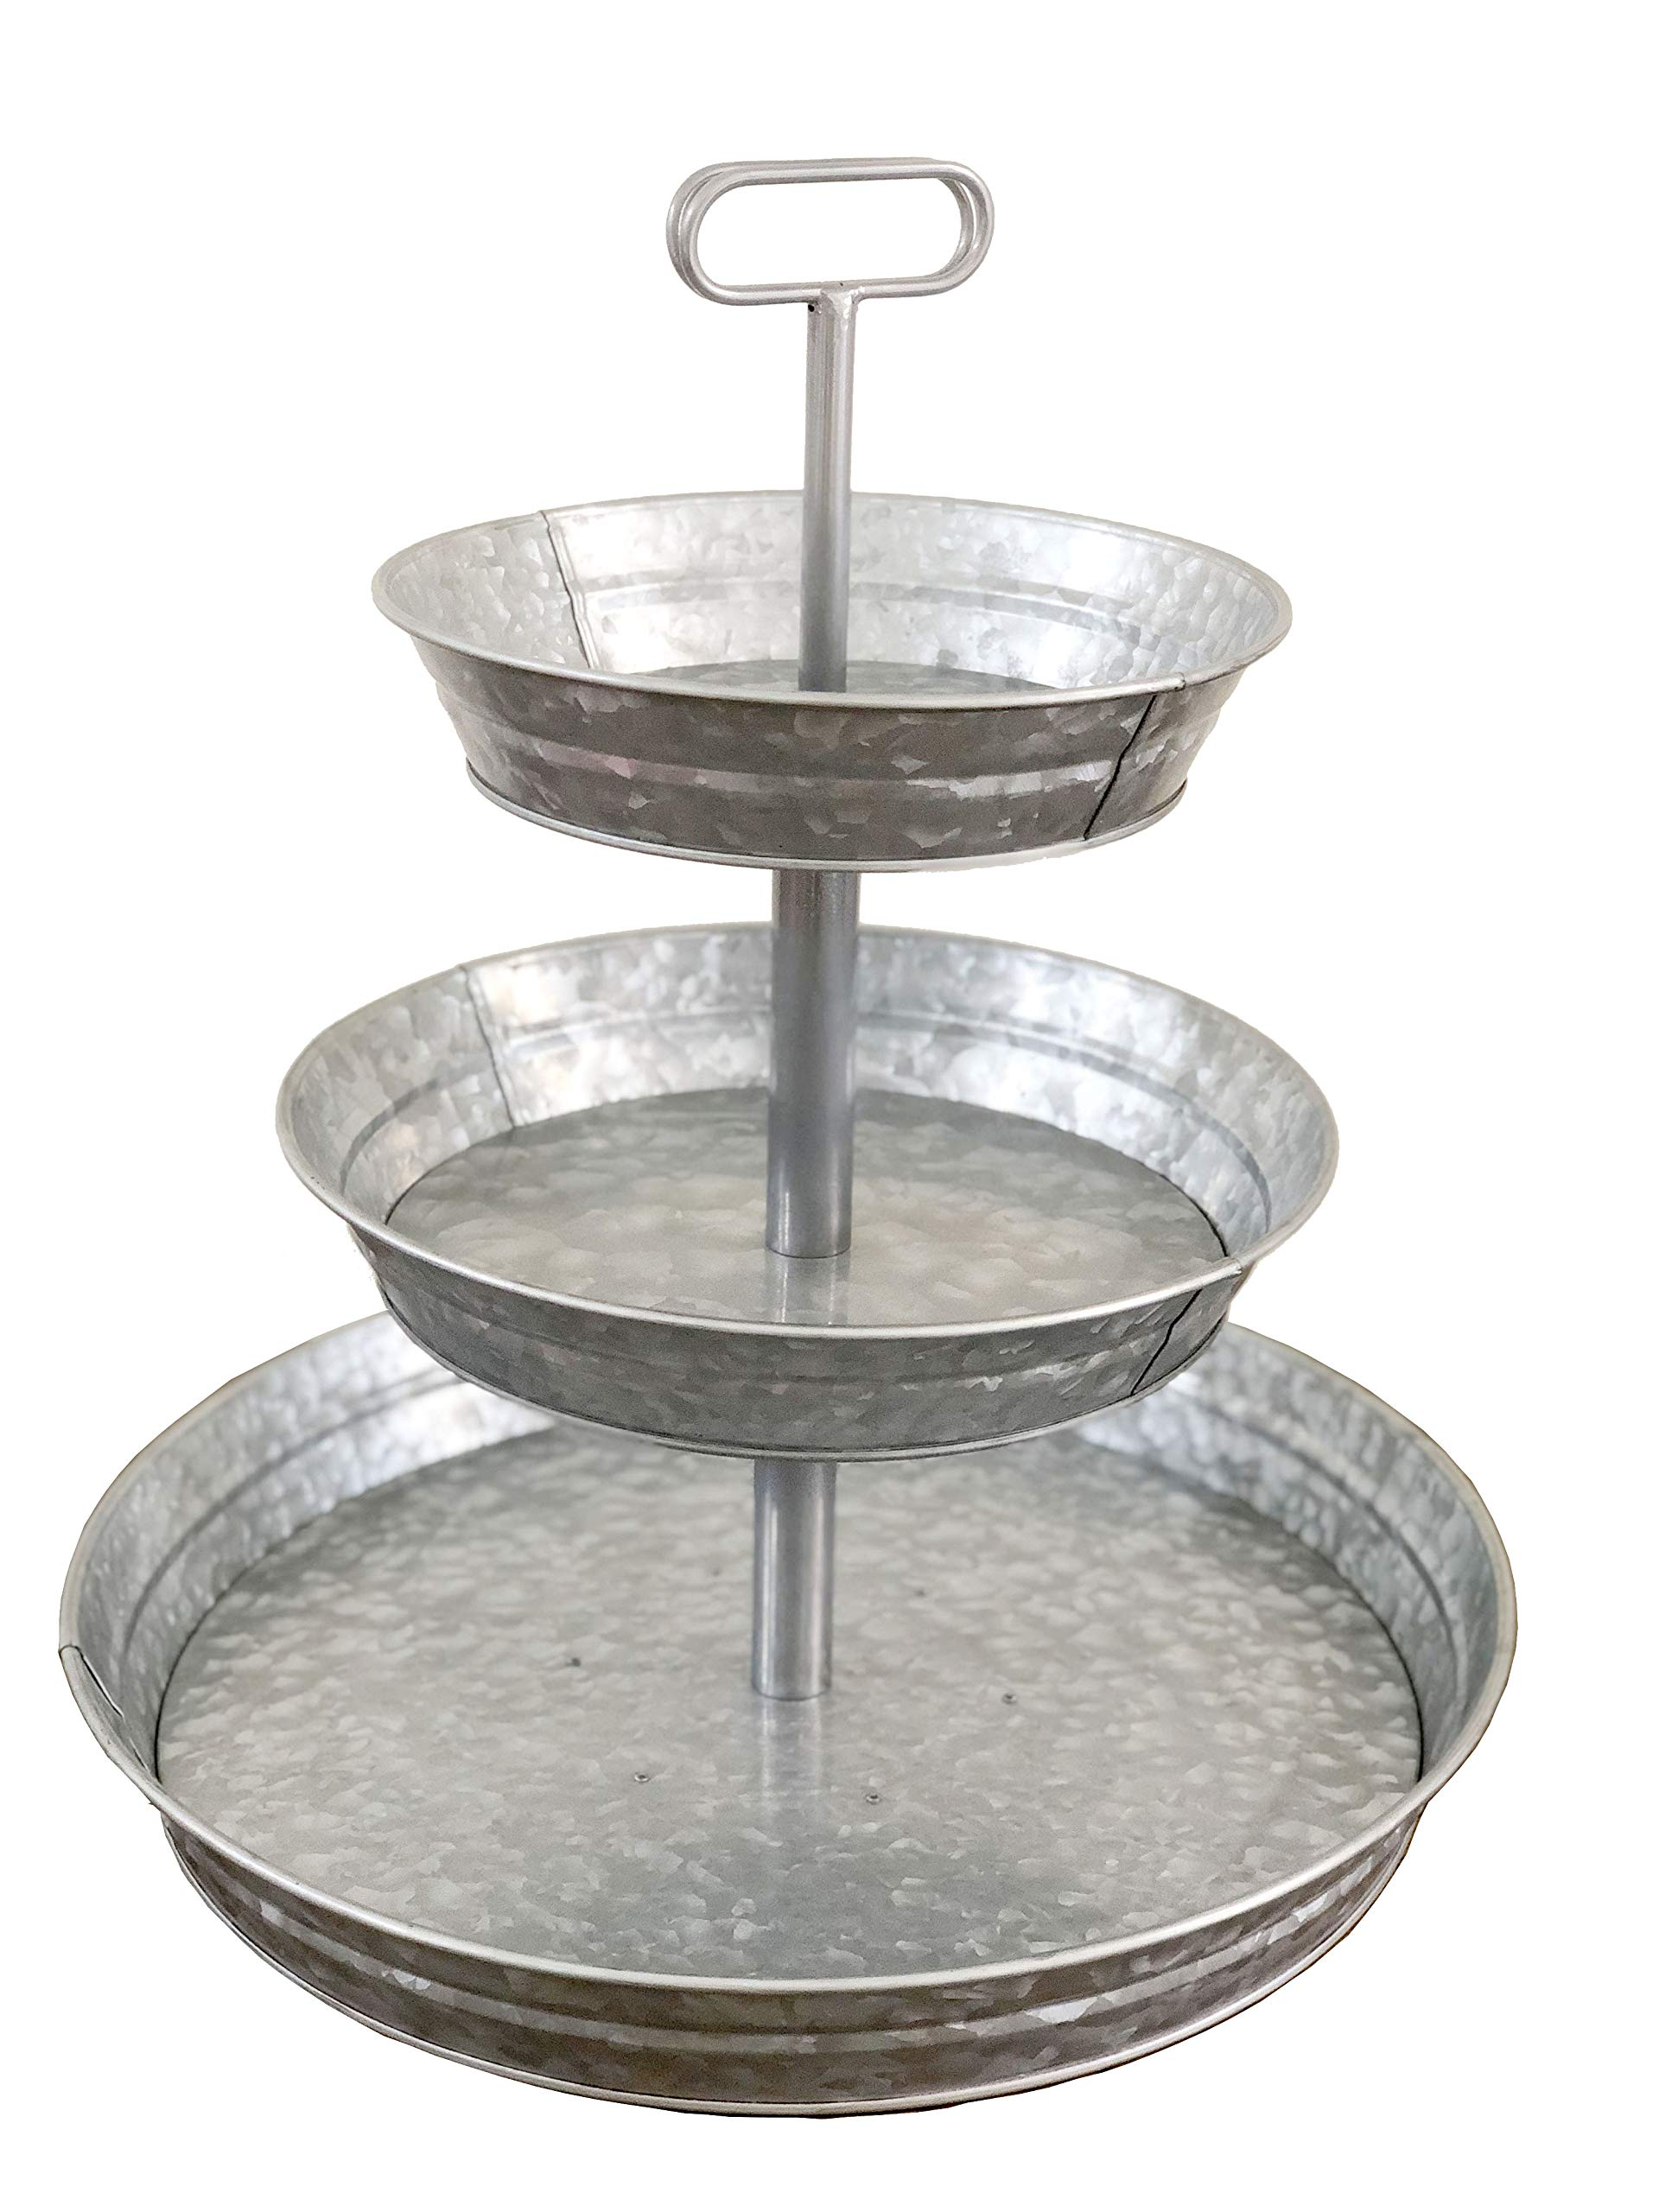 Brown Moo Decor 3 Tier Galvanized Metal Stand (Large) Twin Handle Farmhouse Style Serving Tray | Perfect for Rustic, Vintage Decoration in Kitchen and Dining Room